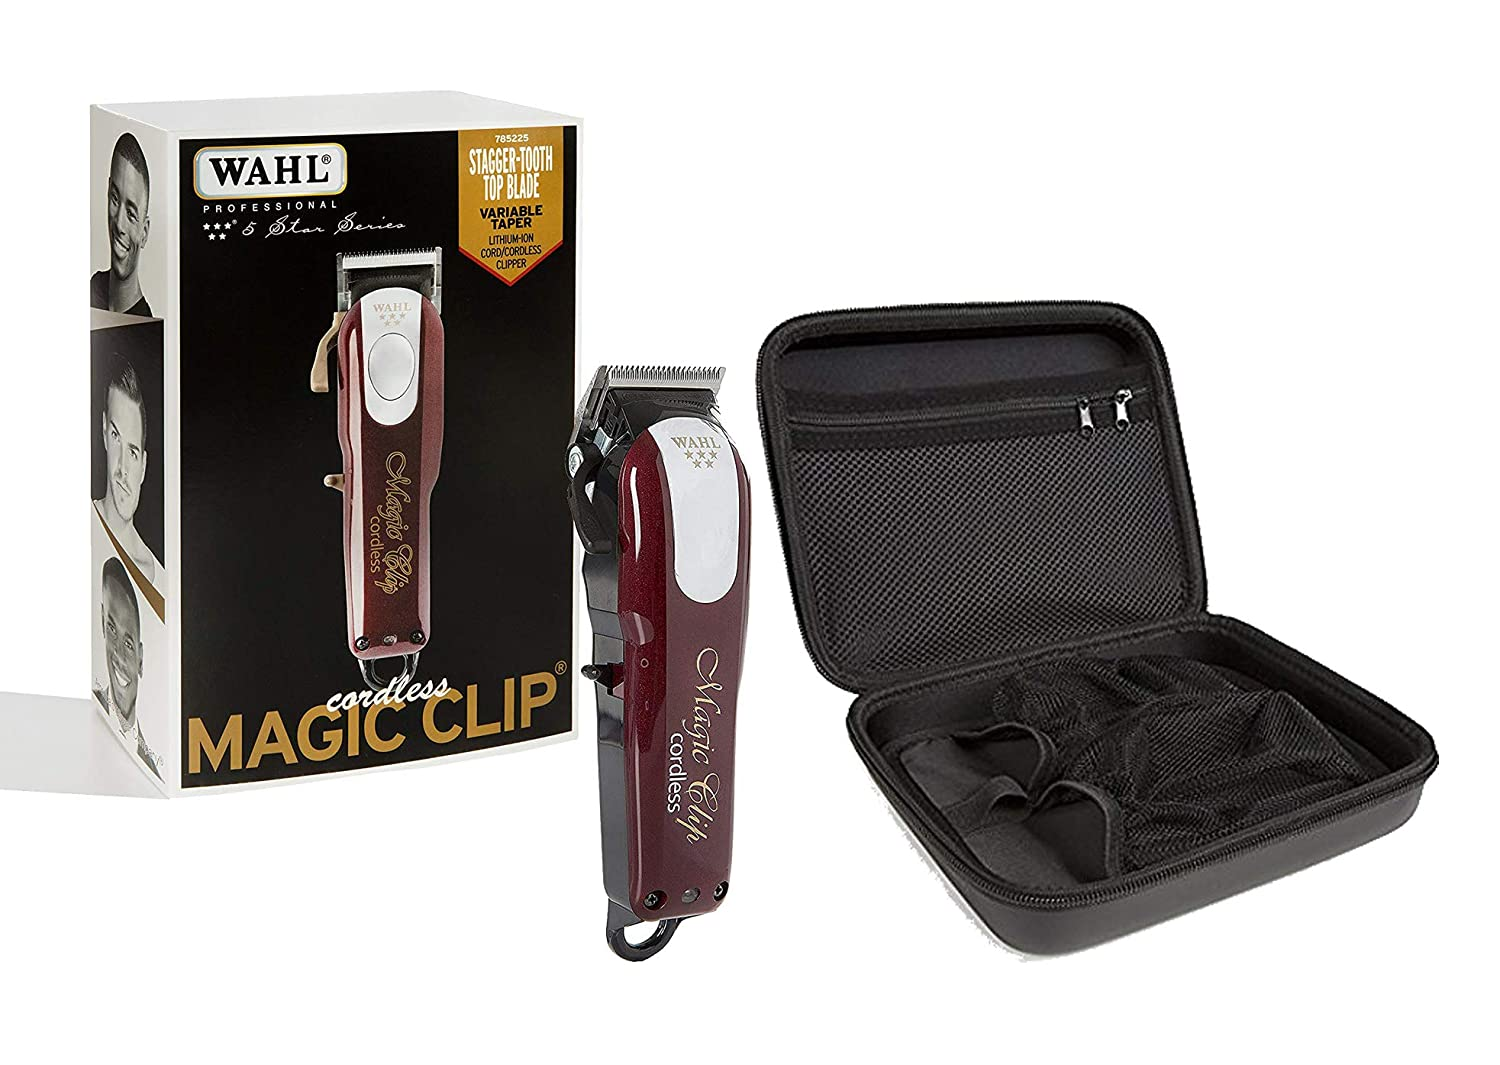 Wahl Professional 5-Star Cord Cordless Magic Clip 8148 with Travel Storage Case 90728